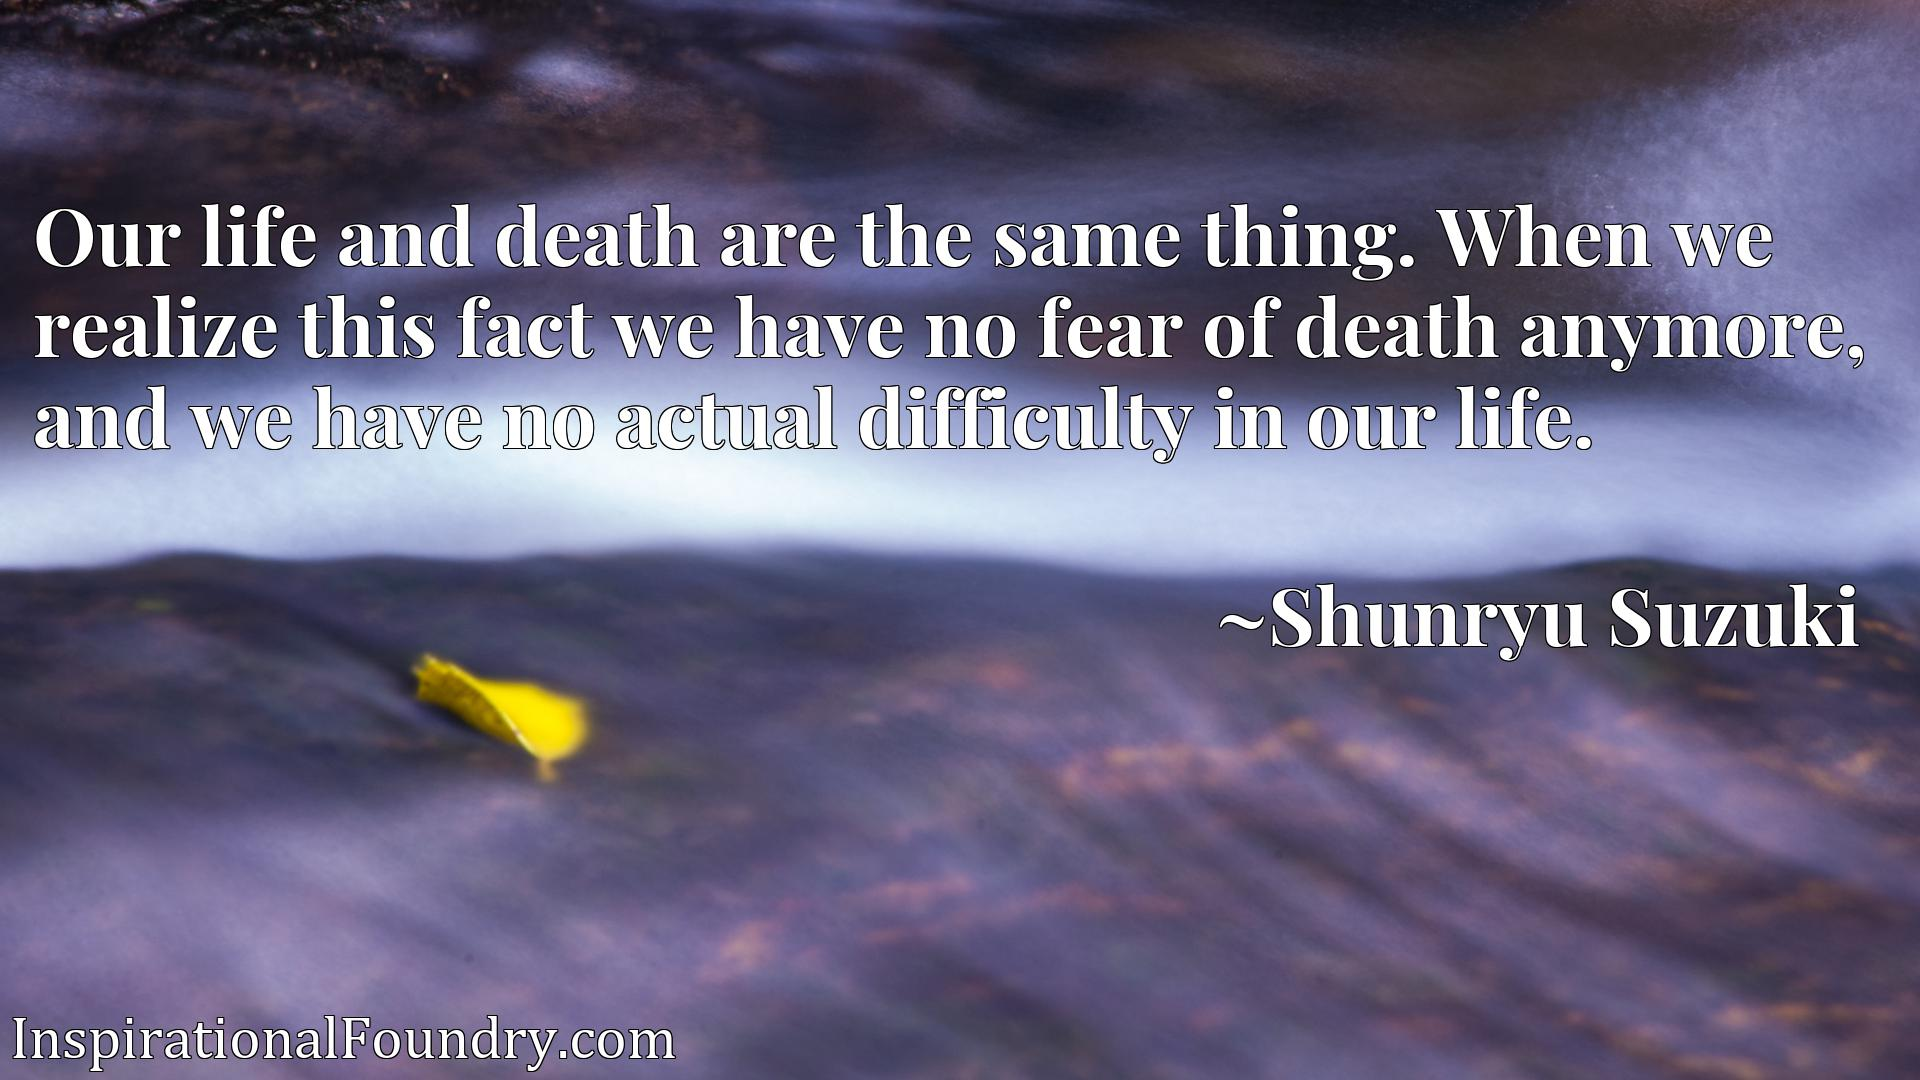 Our life and death are the same thing. When we realize this fact we have no fear of death anymore, and we have no actual difficulty in our life.